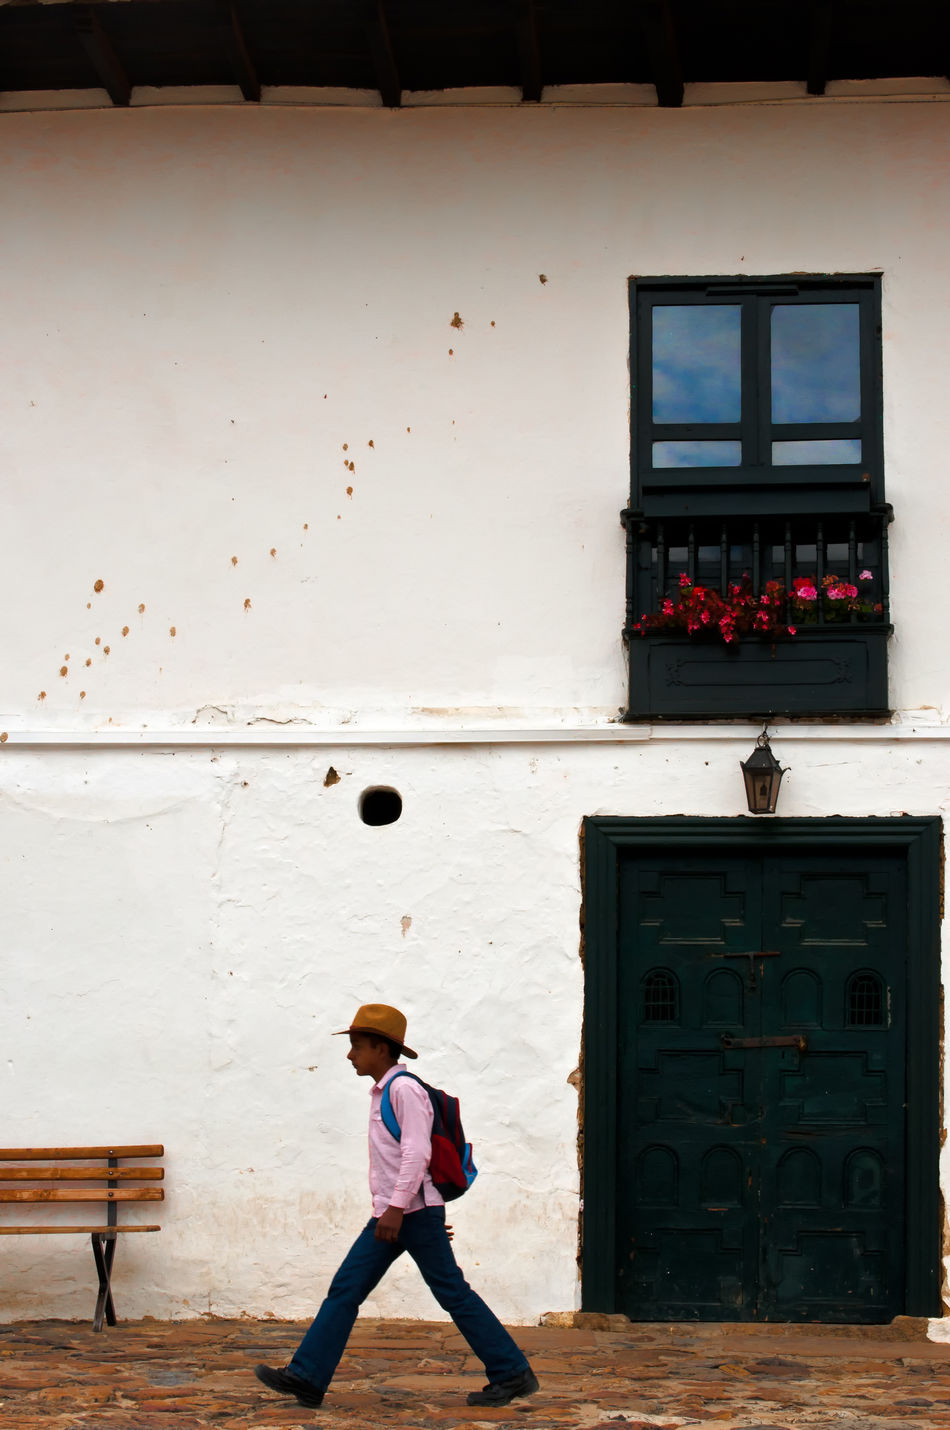 A young boy walking in front of an old colonial building. America Architecture Boyaca Building Colombia Colonial Country Countryside Exterior Historic House Latin Outdoors Residence South Stone Style Town Travel Typical VillaDeLeyva Wall White Window Wood